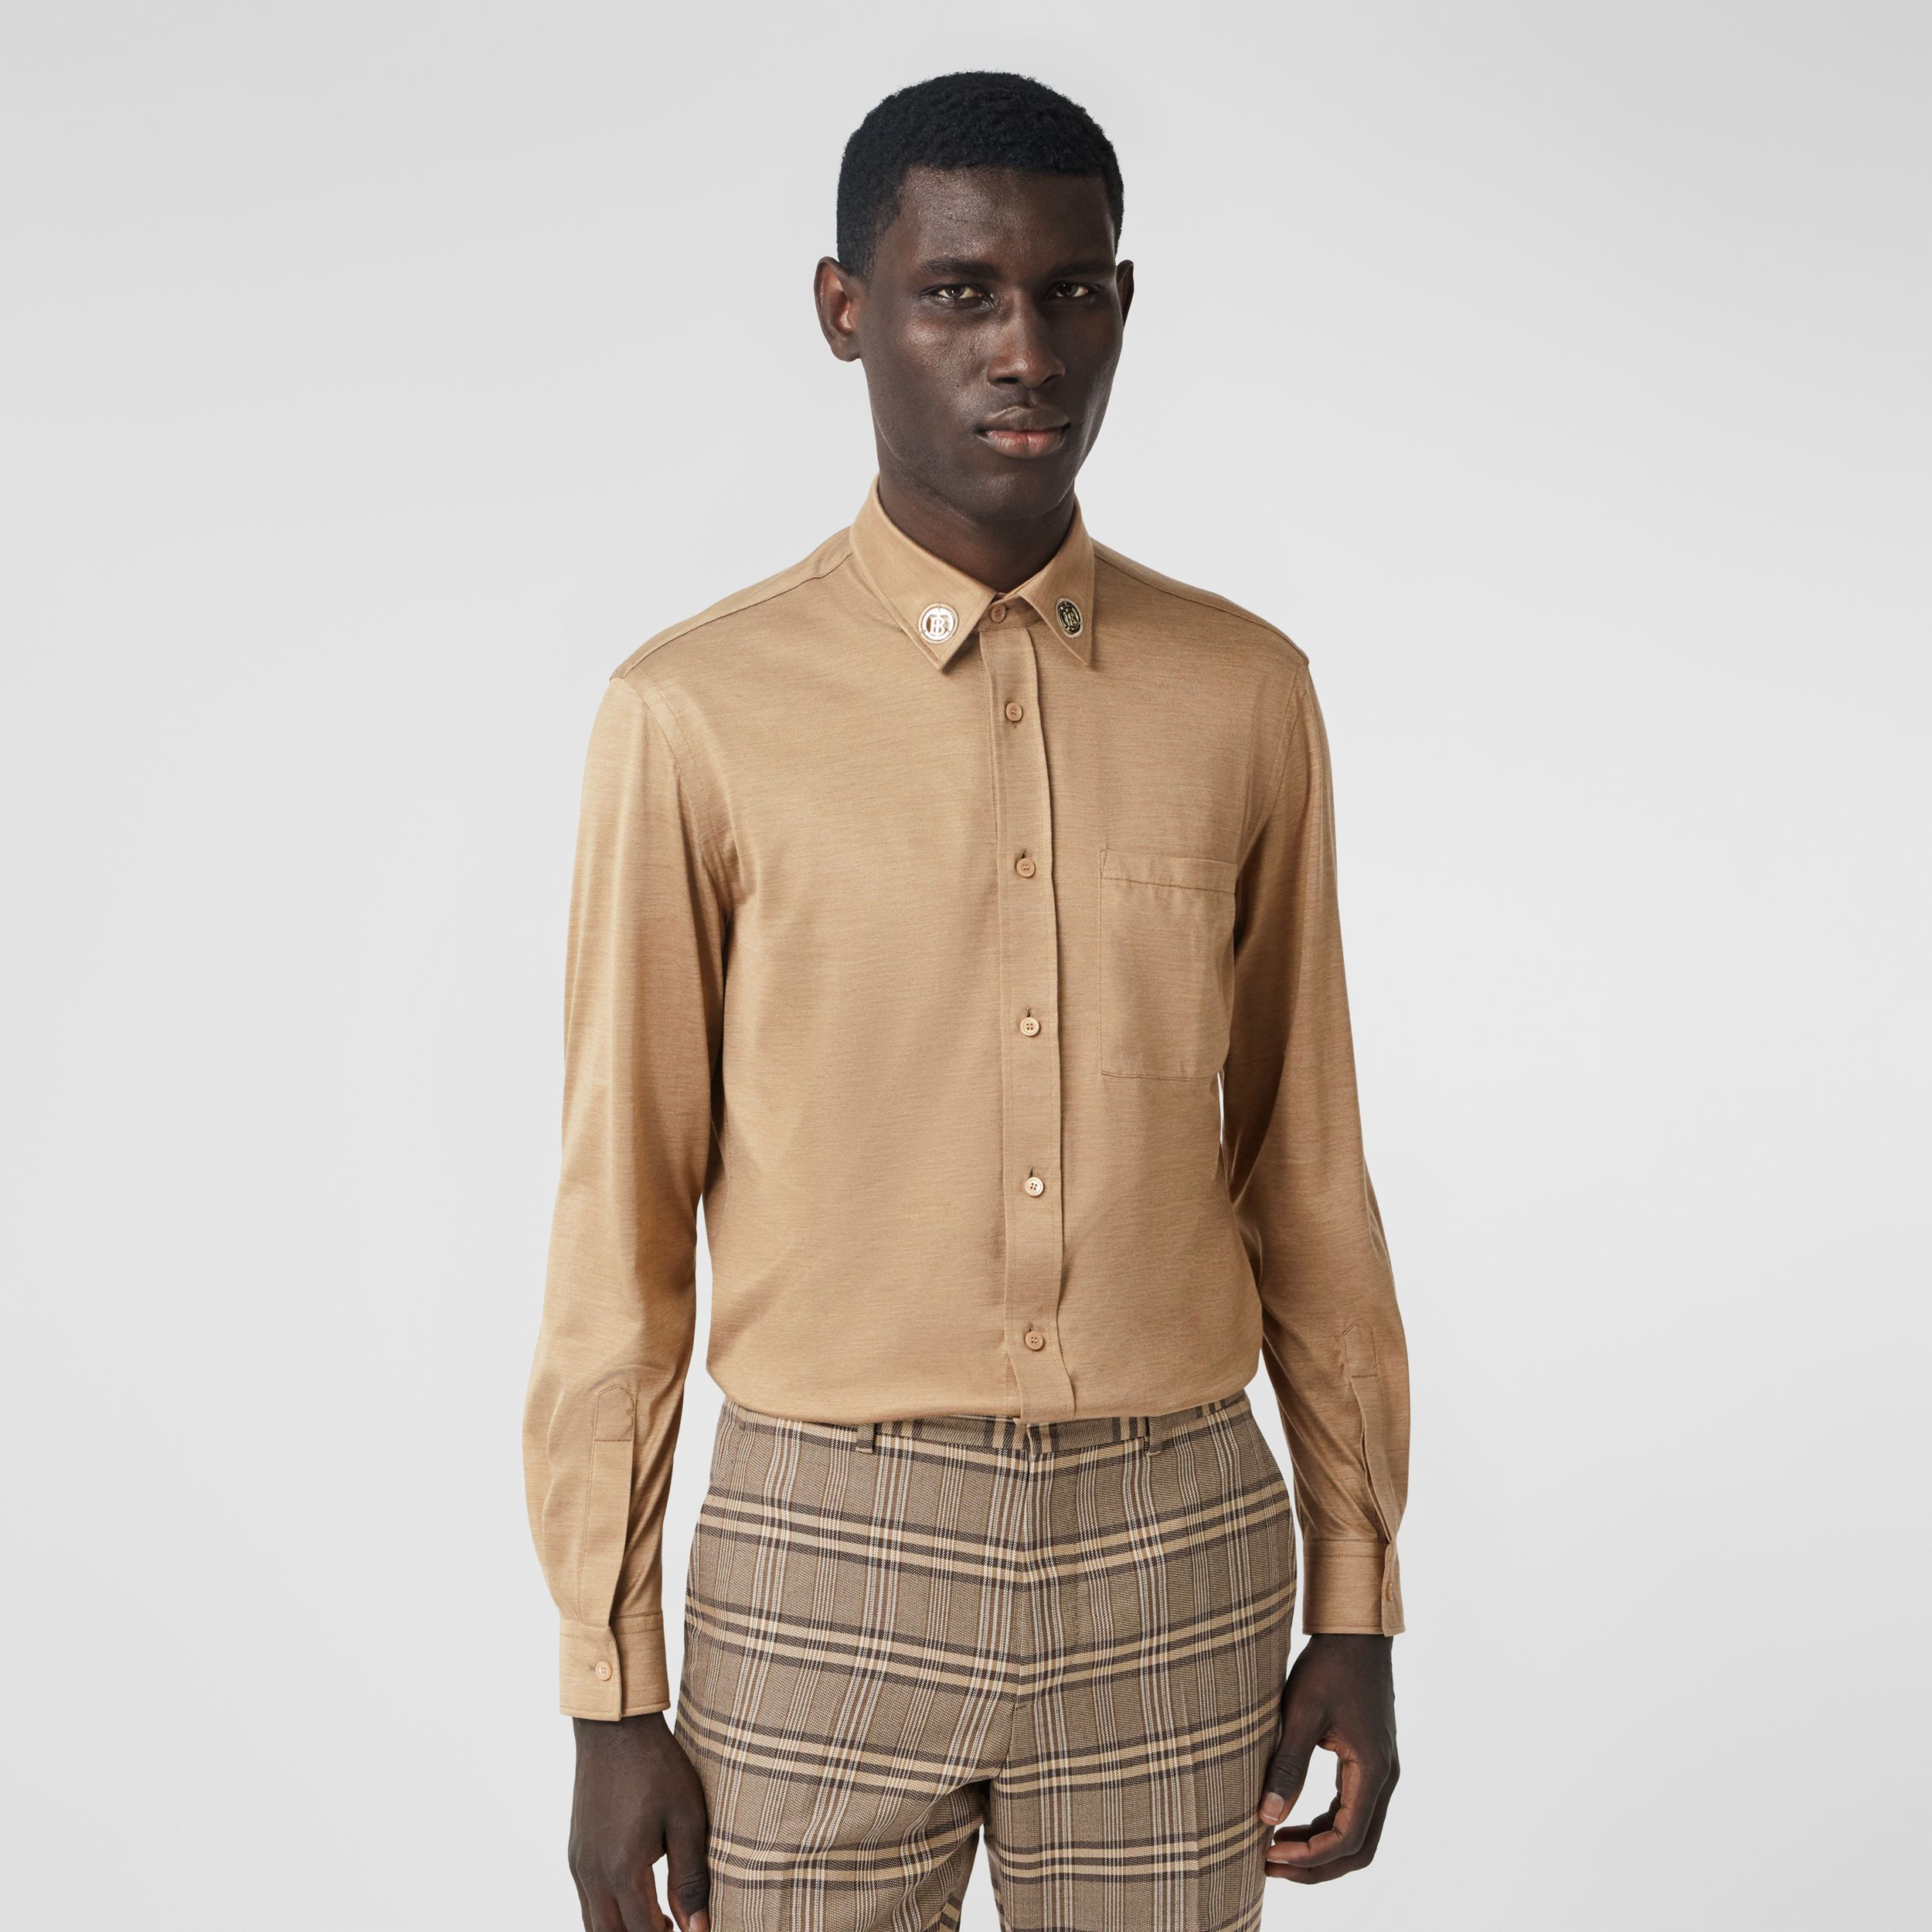 Classic Fit Monogram Motif Silk Jersey Shirt in Soft Fawn | Burberry Canada - 1